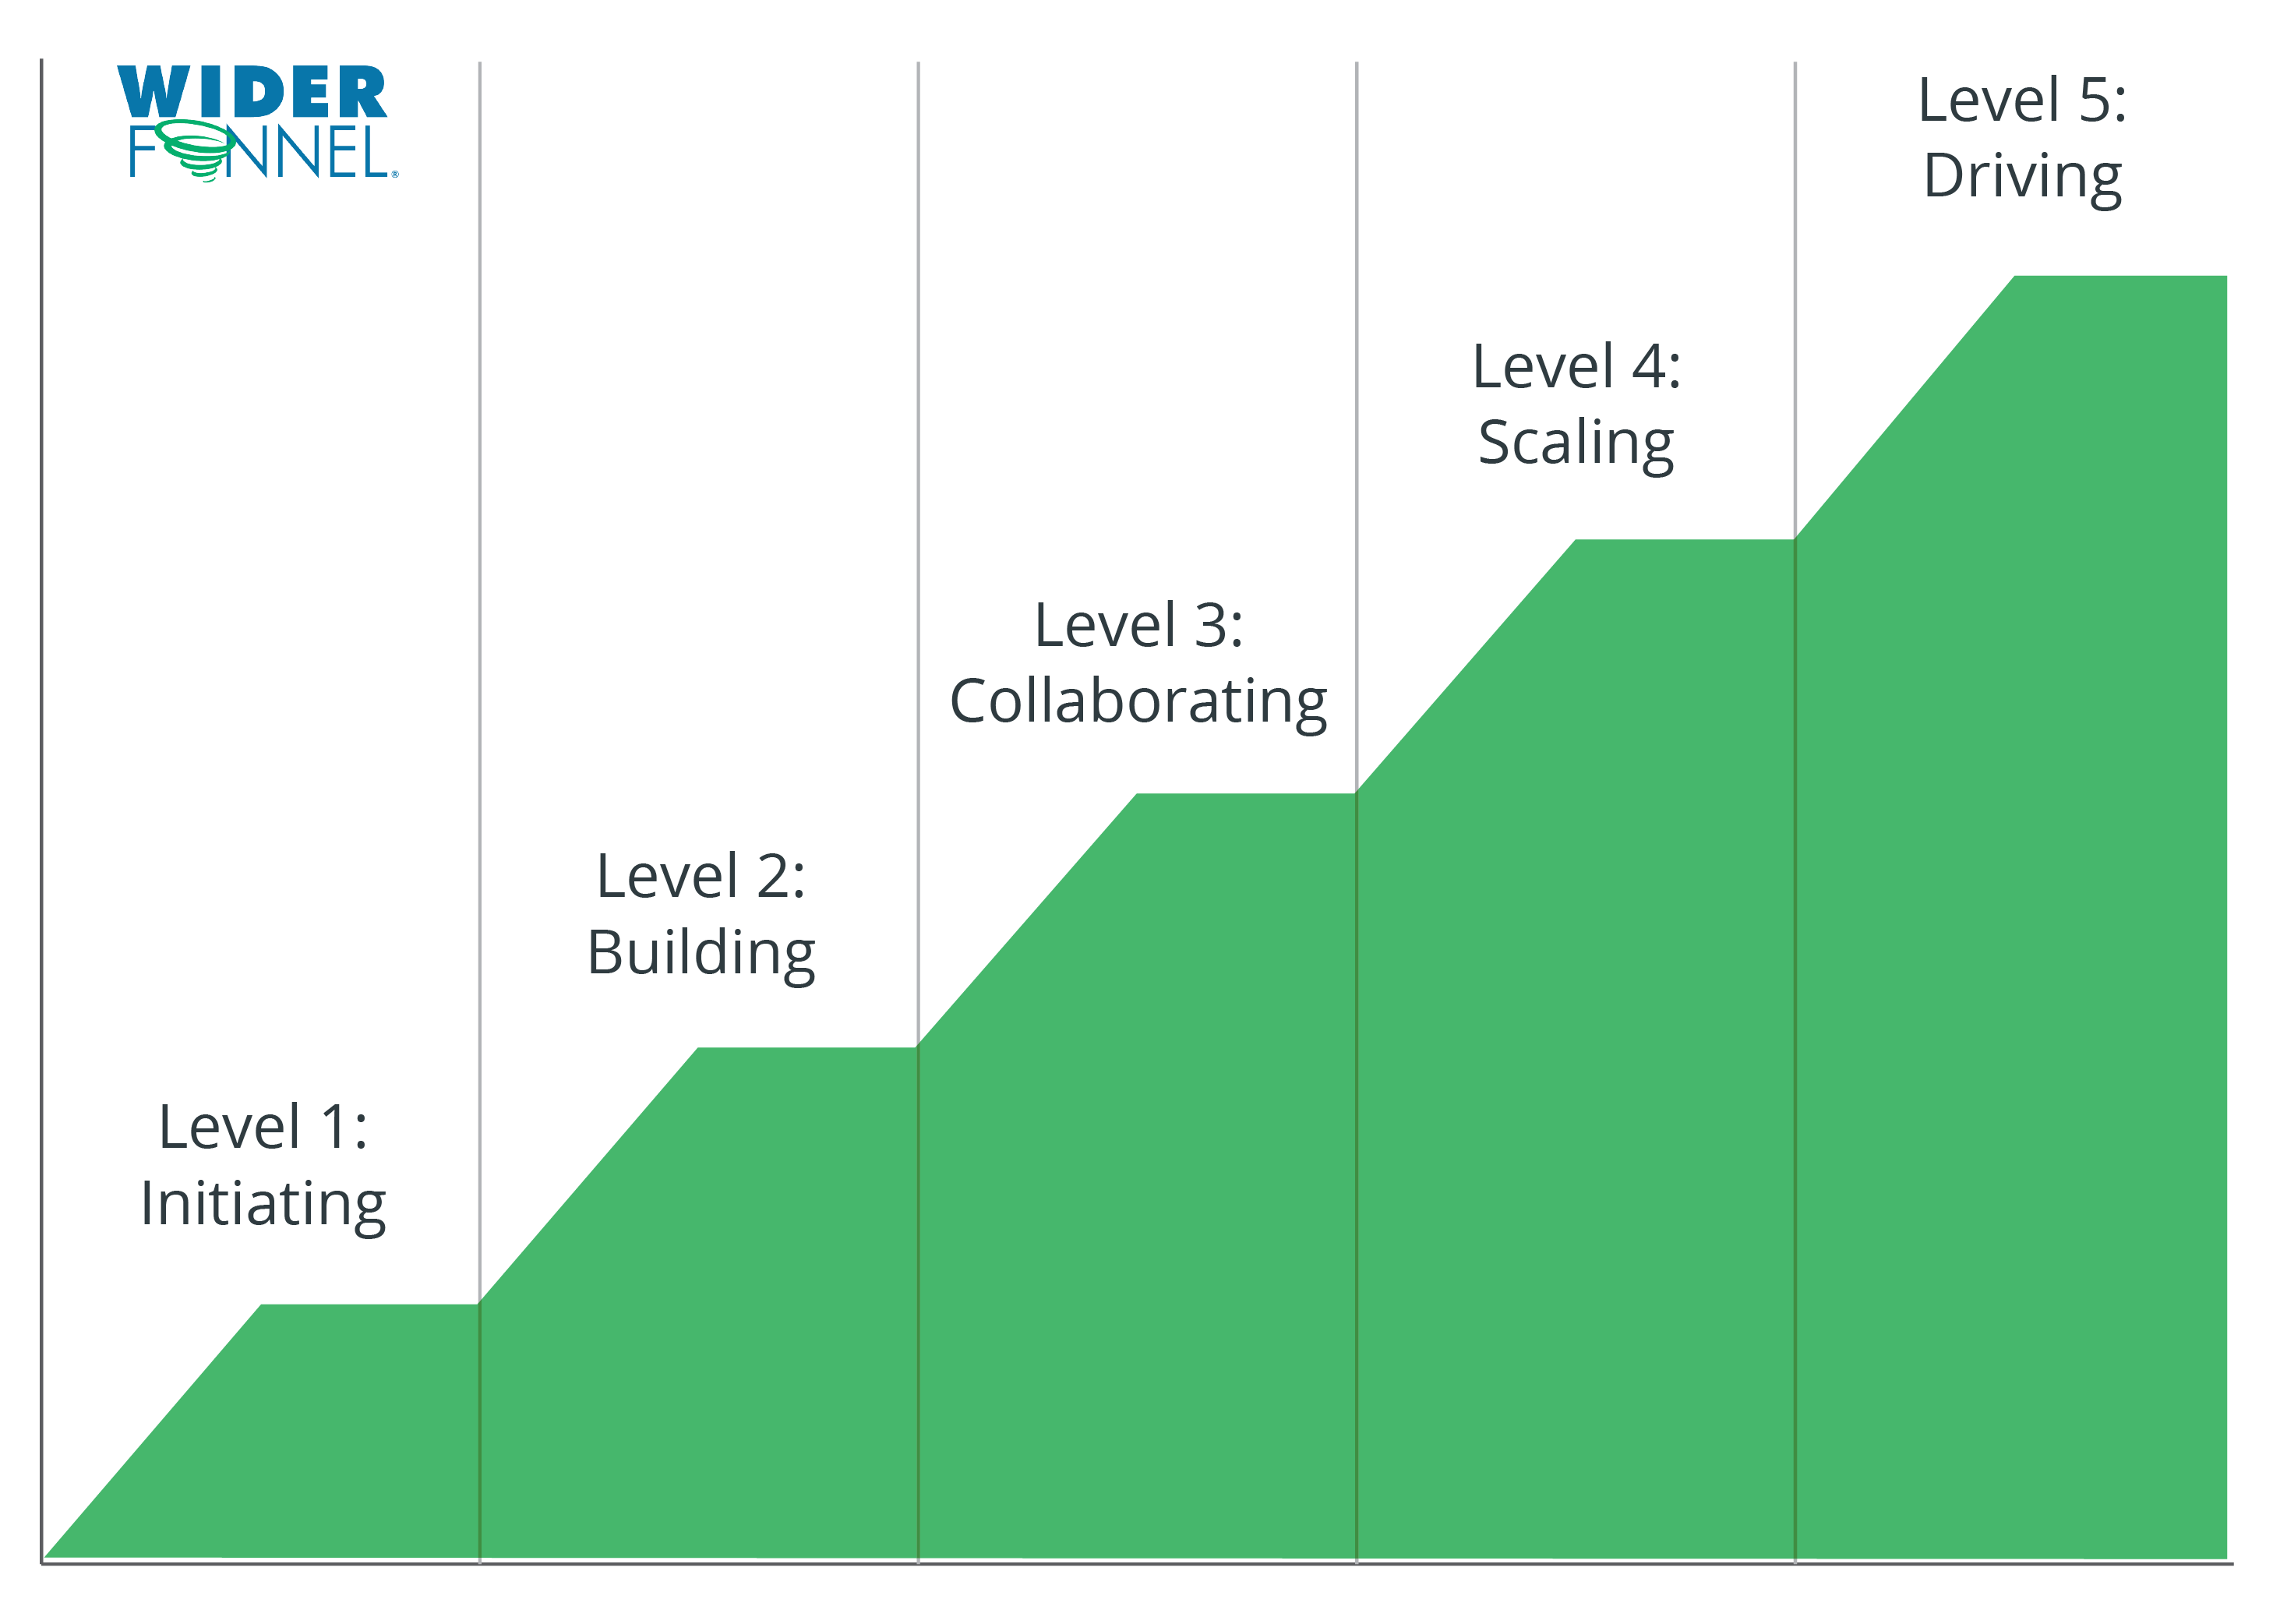 Experimentation maturity levels Widerfunnel